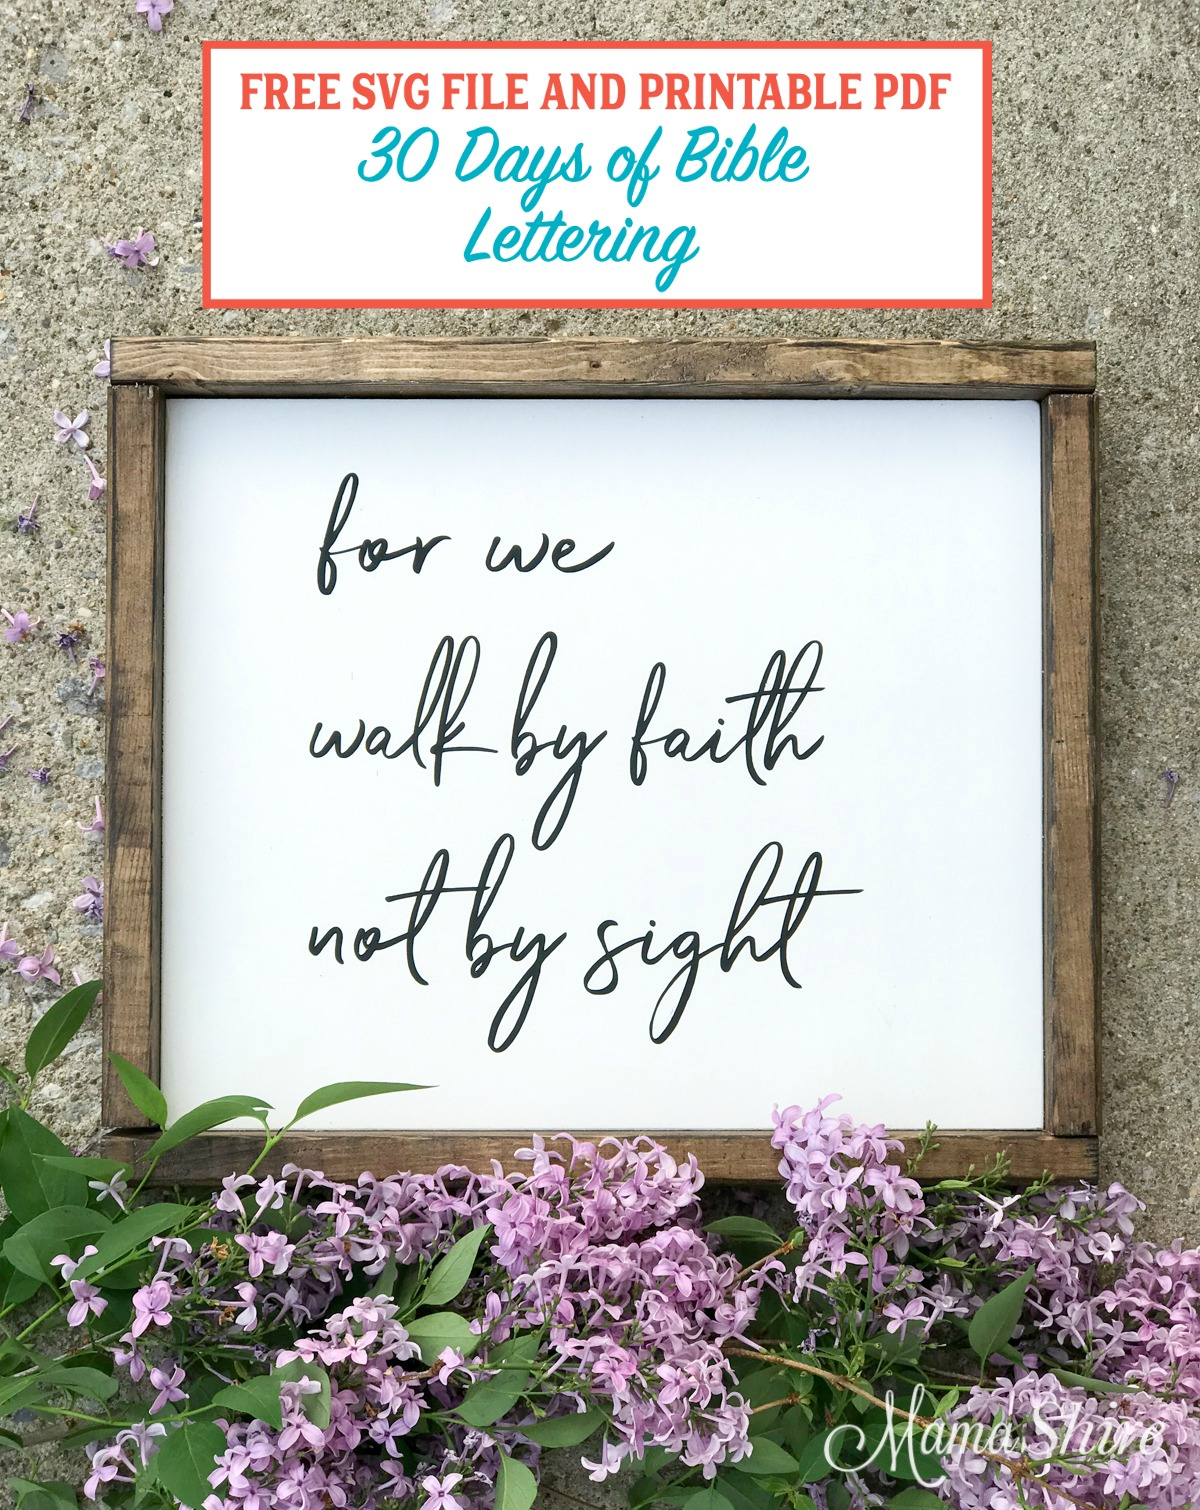 Walk By Faith, Not By Sight Free SVG, DXF, and printable PDF.